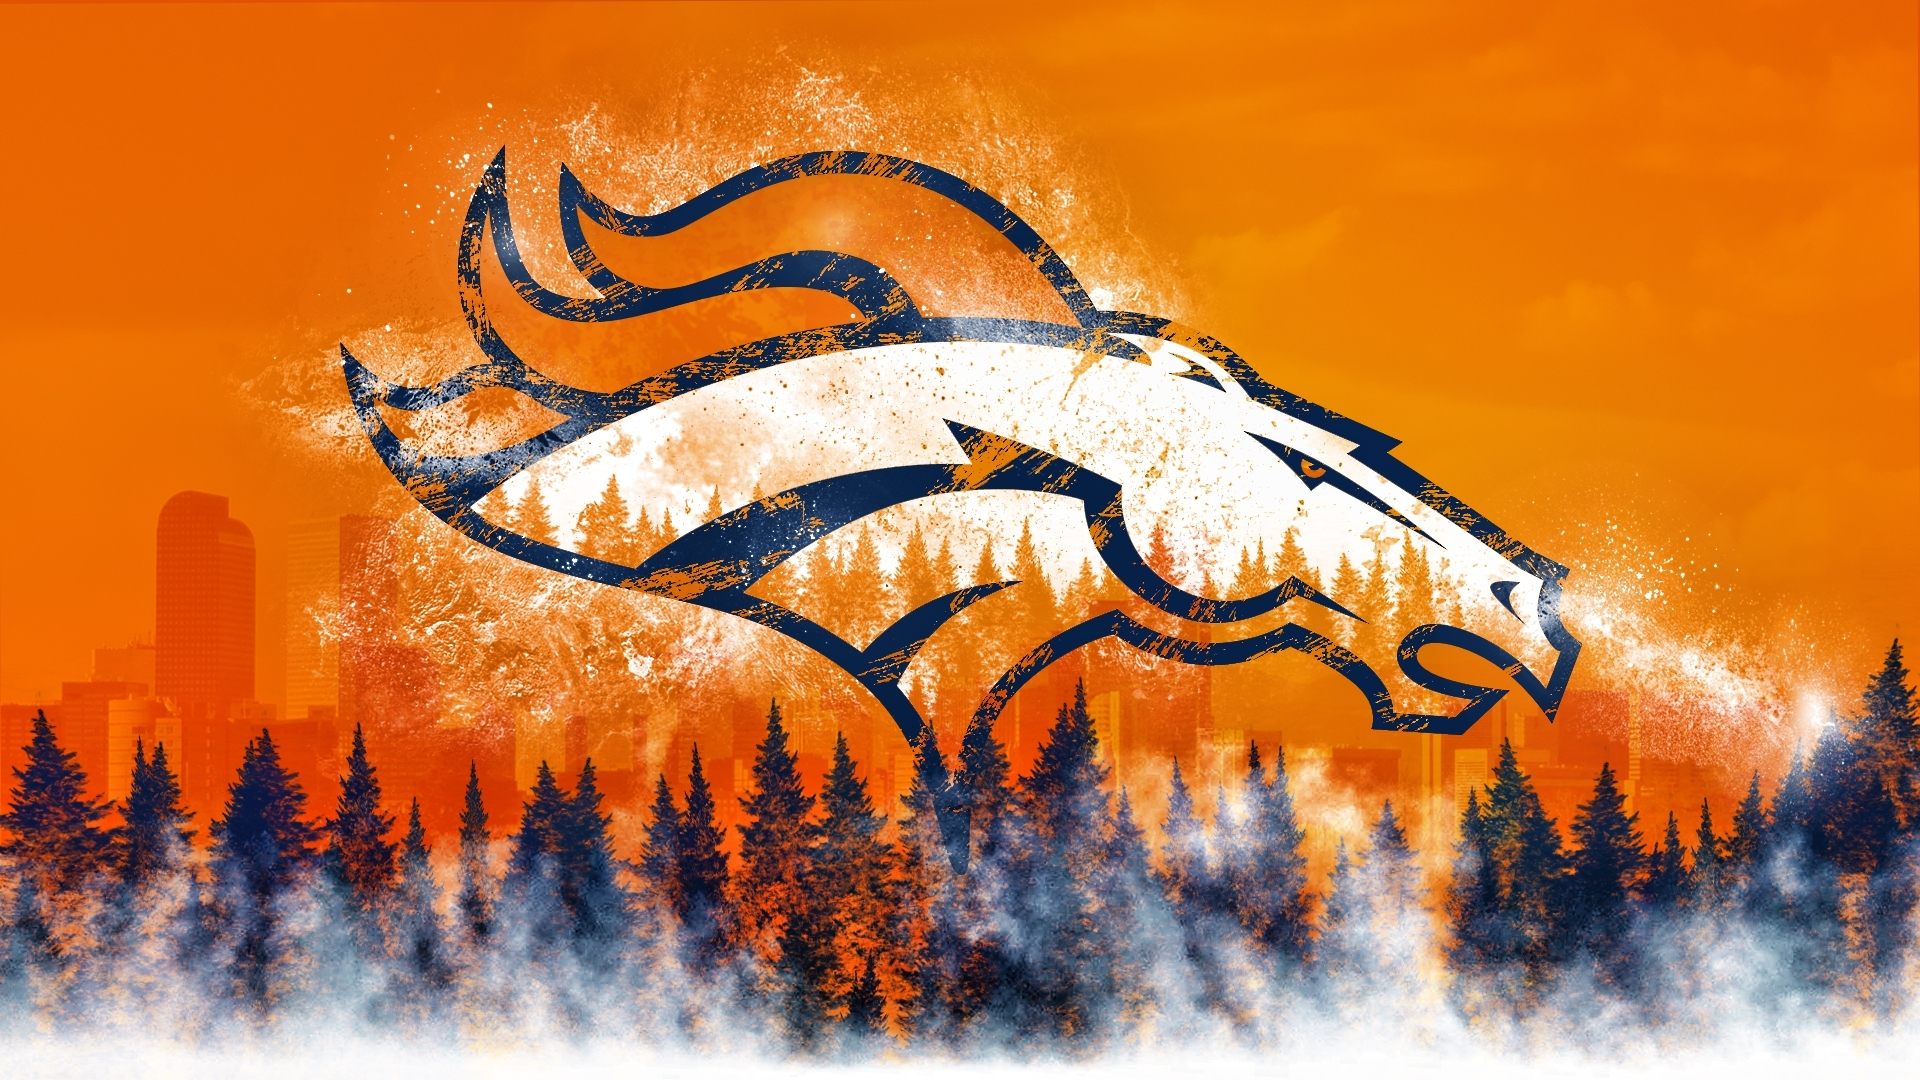 denver broncos wallpaper images hd - media file | pixelstalk